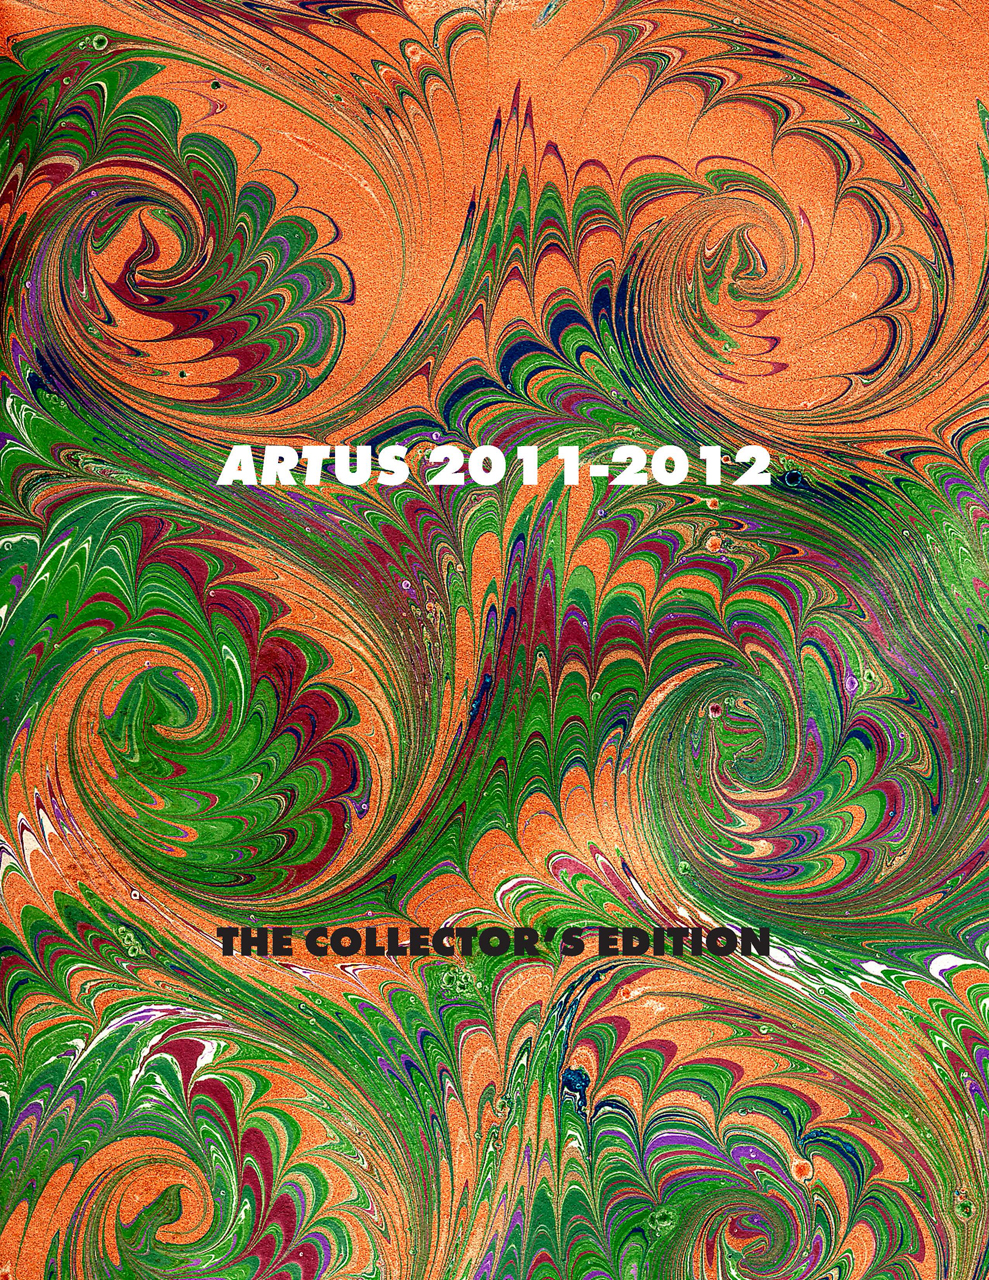 artUS 2011-2012: The Collector's Edition